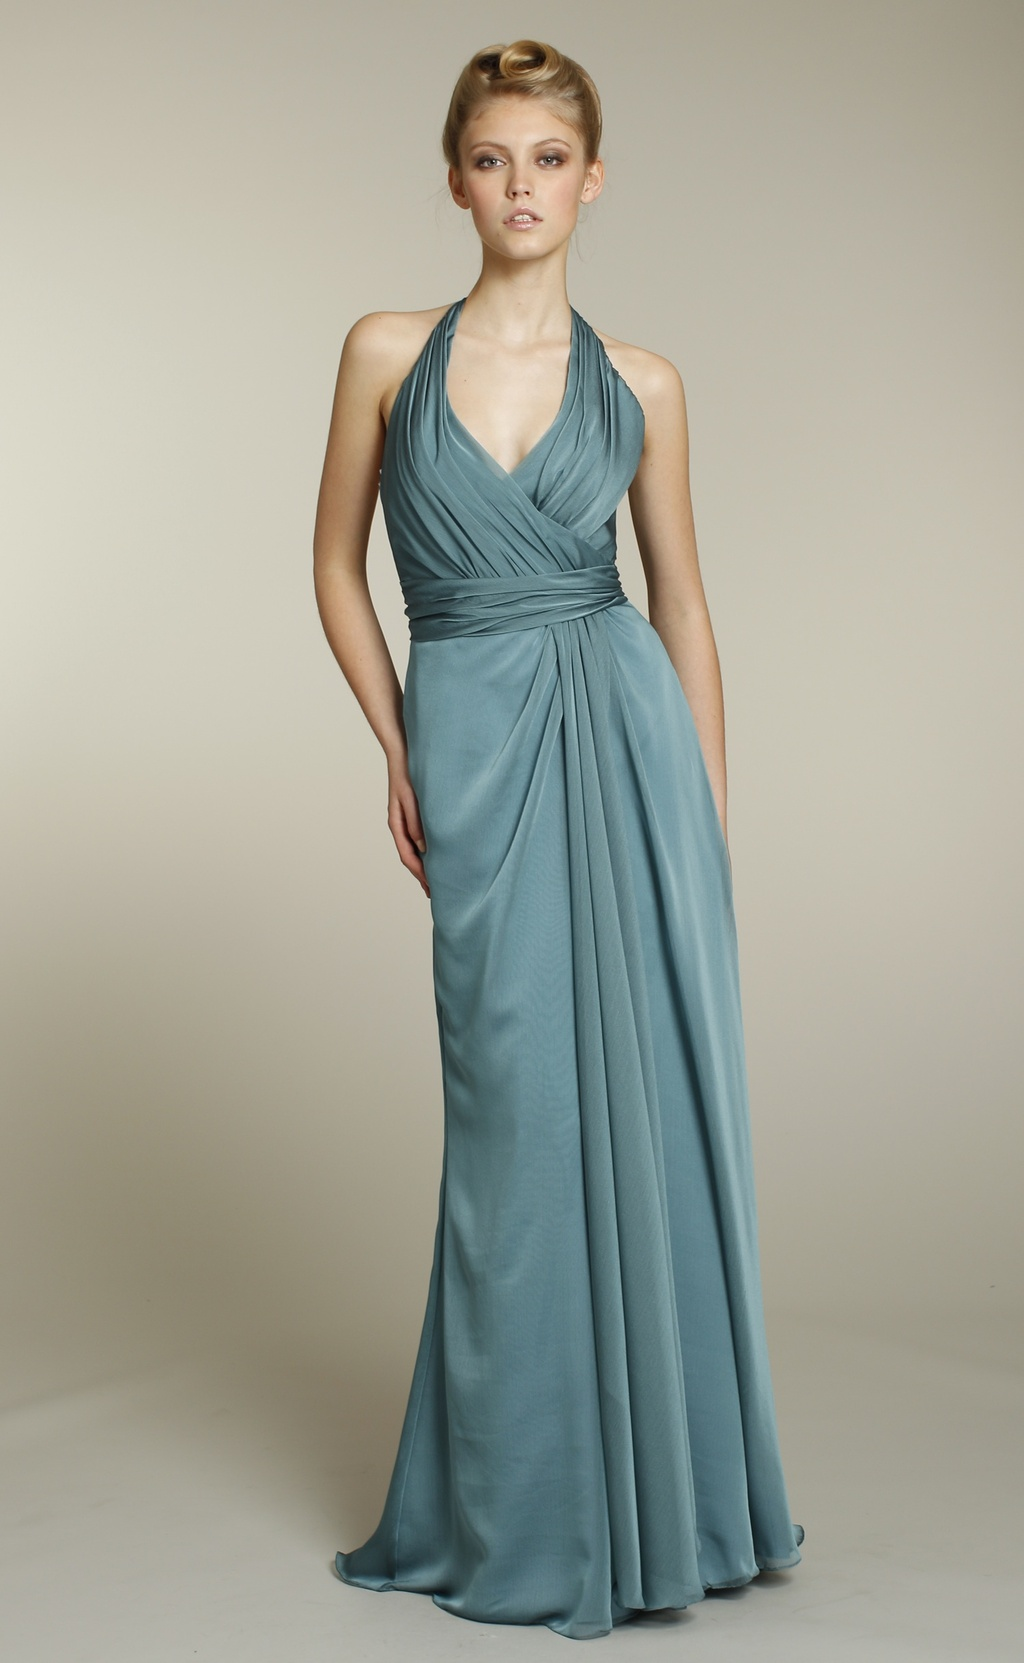 Full-length aqua chiffon bridesmaid dress